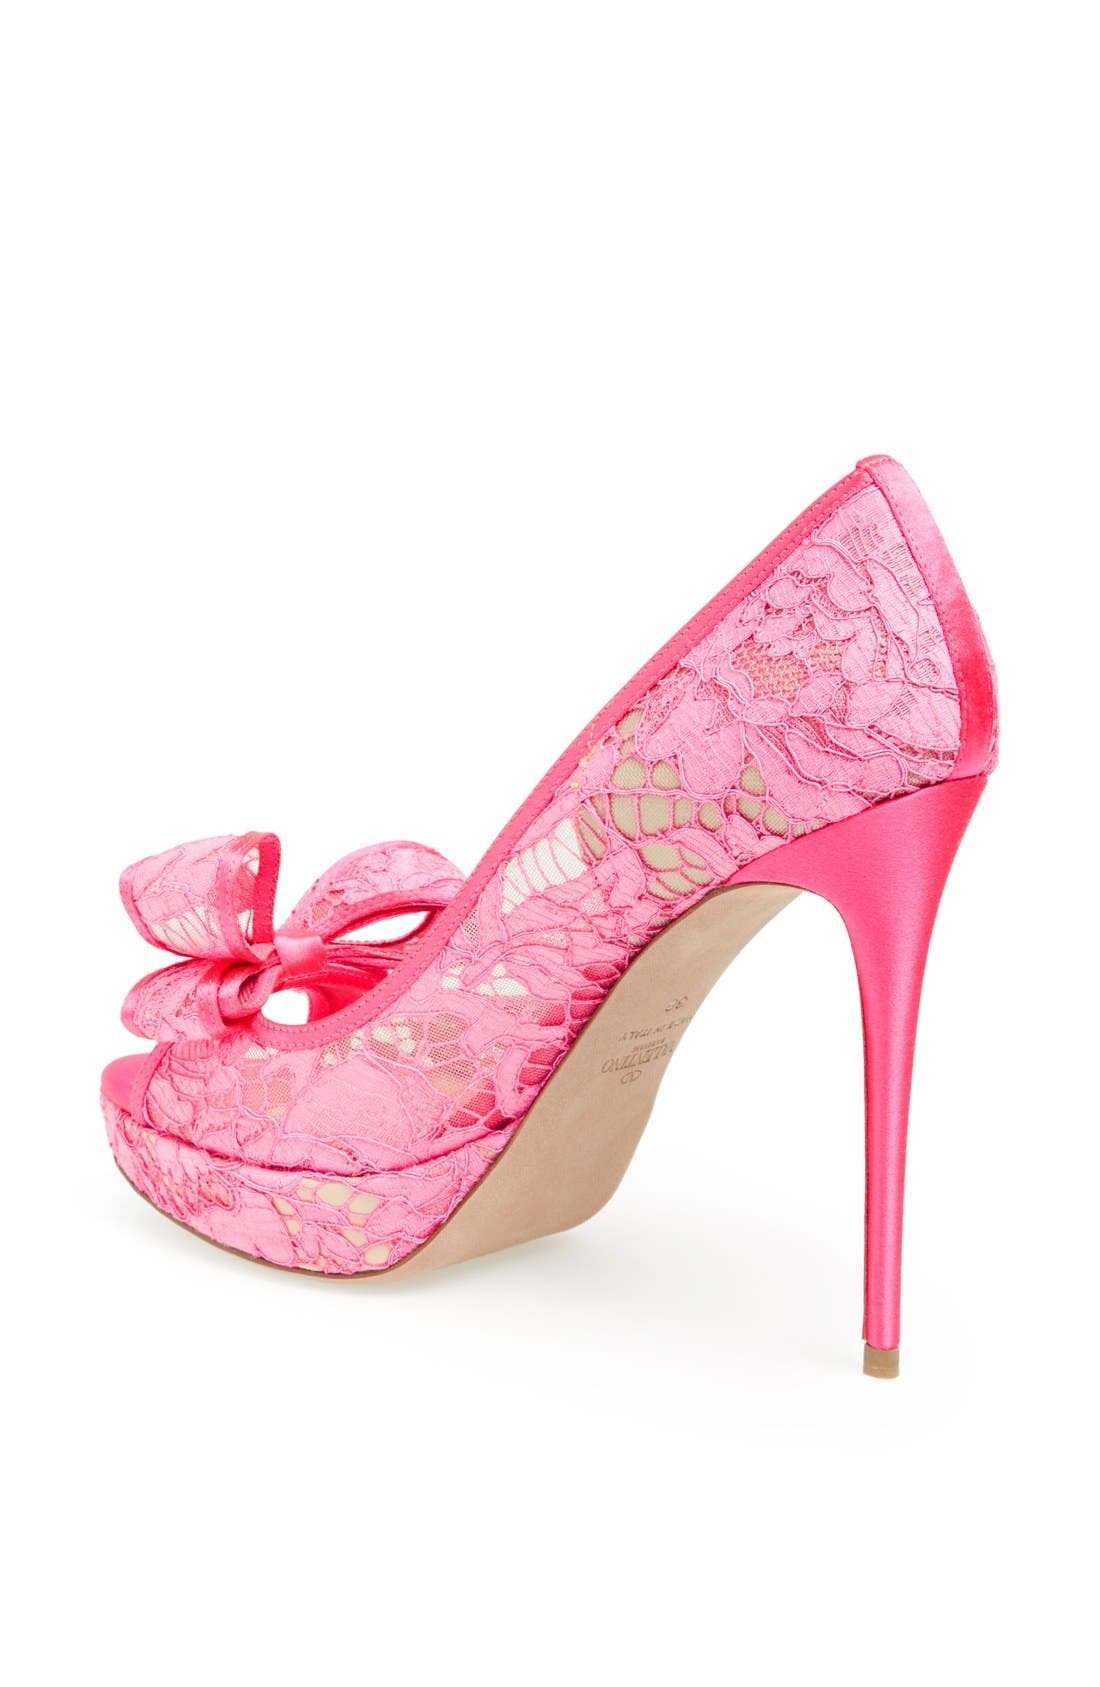 'Lace Couture Bow' Open Toe Pump,                             Alternate thumbnail 3, color,                             651